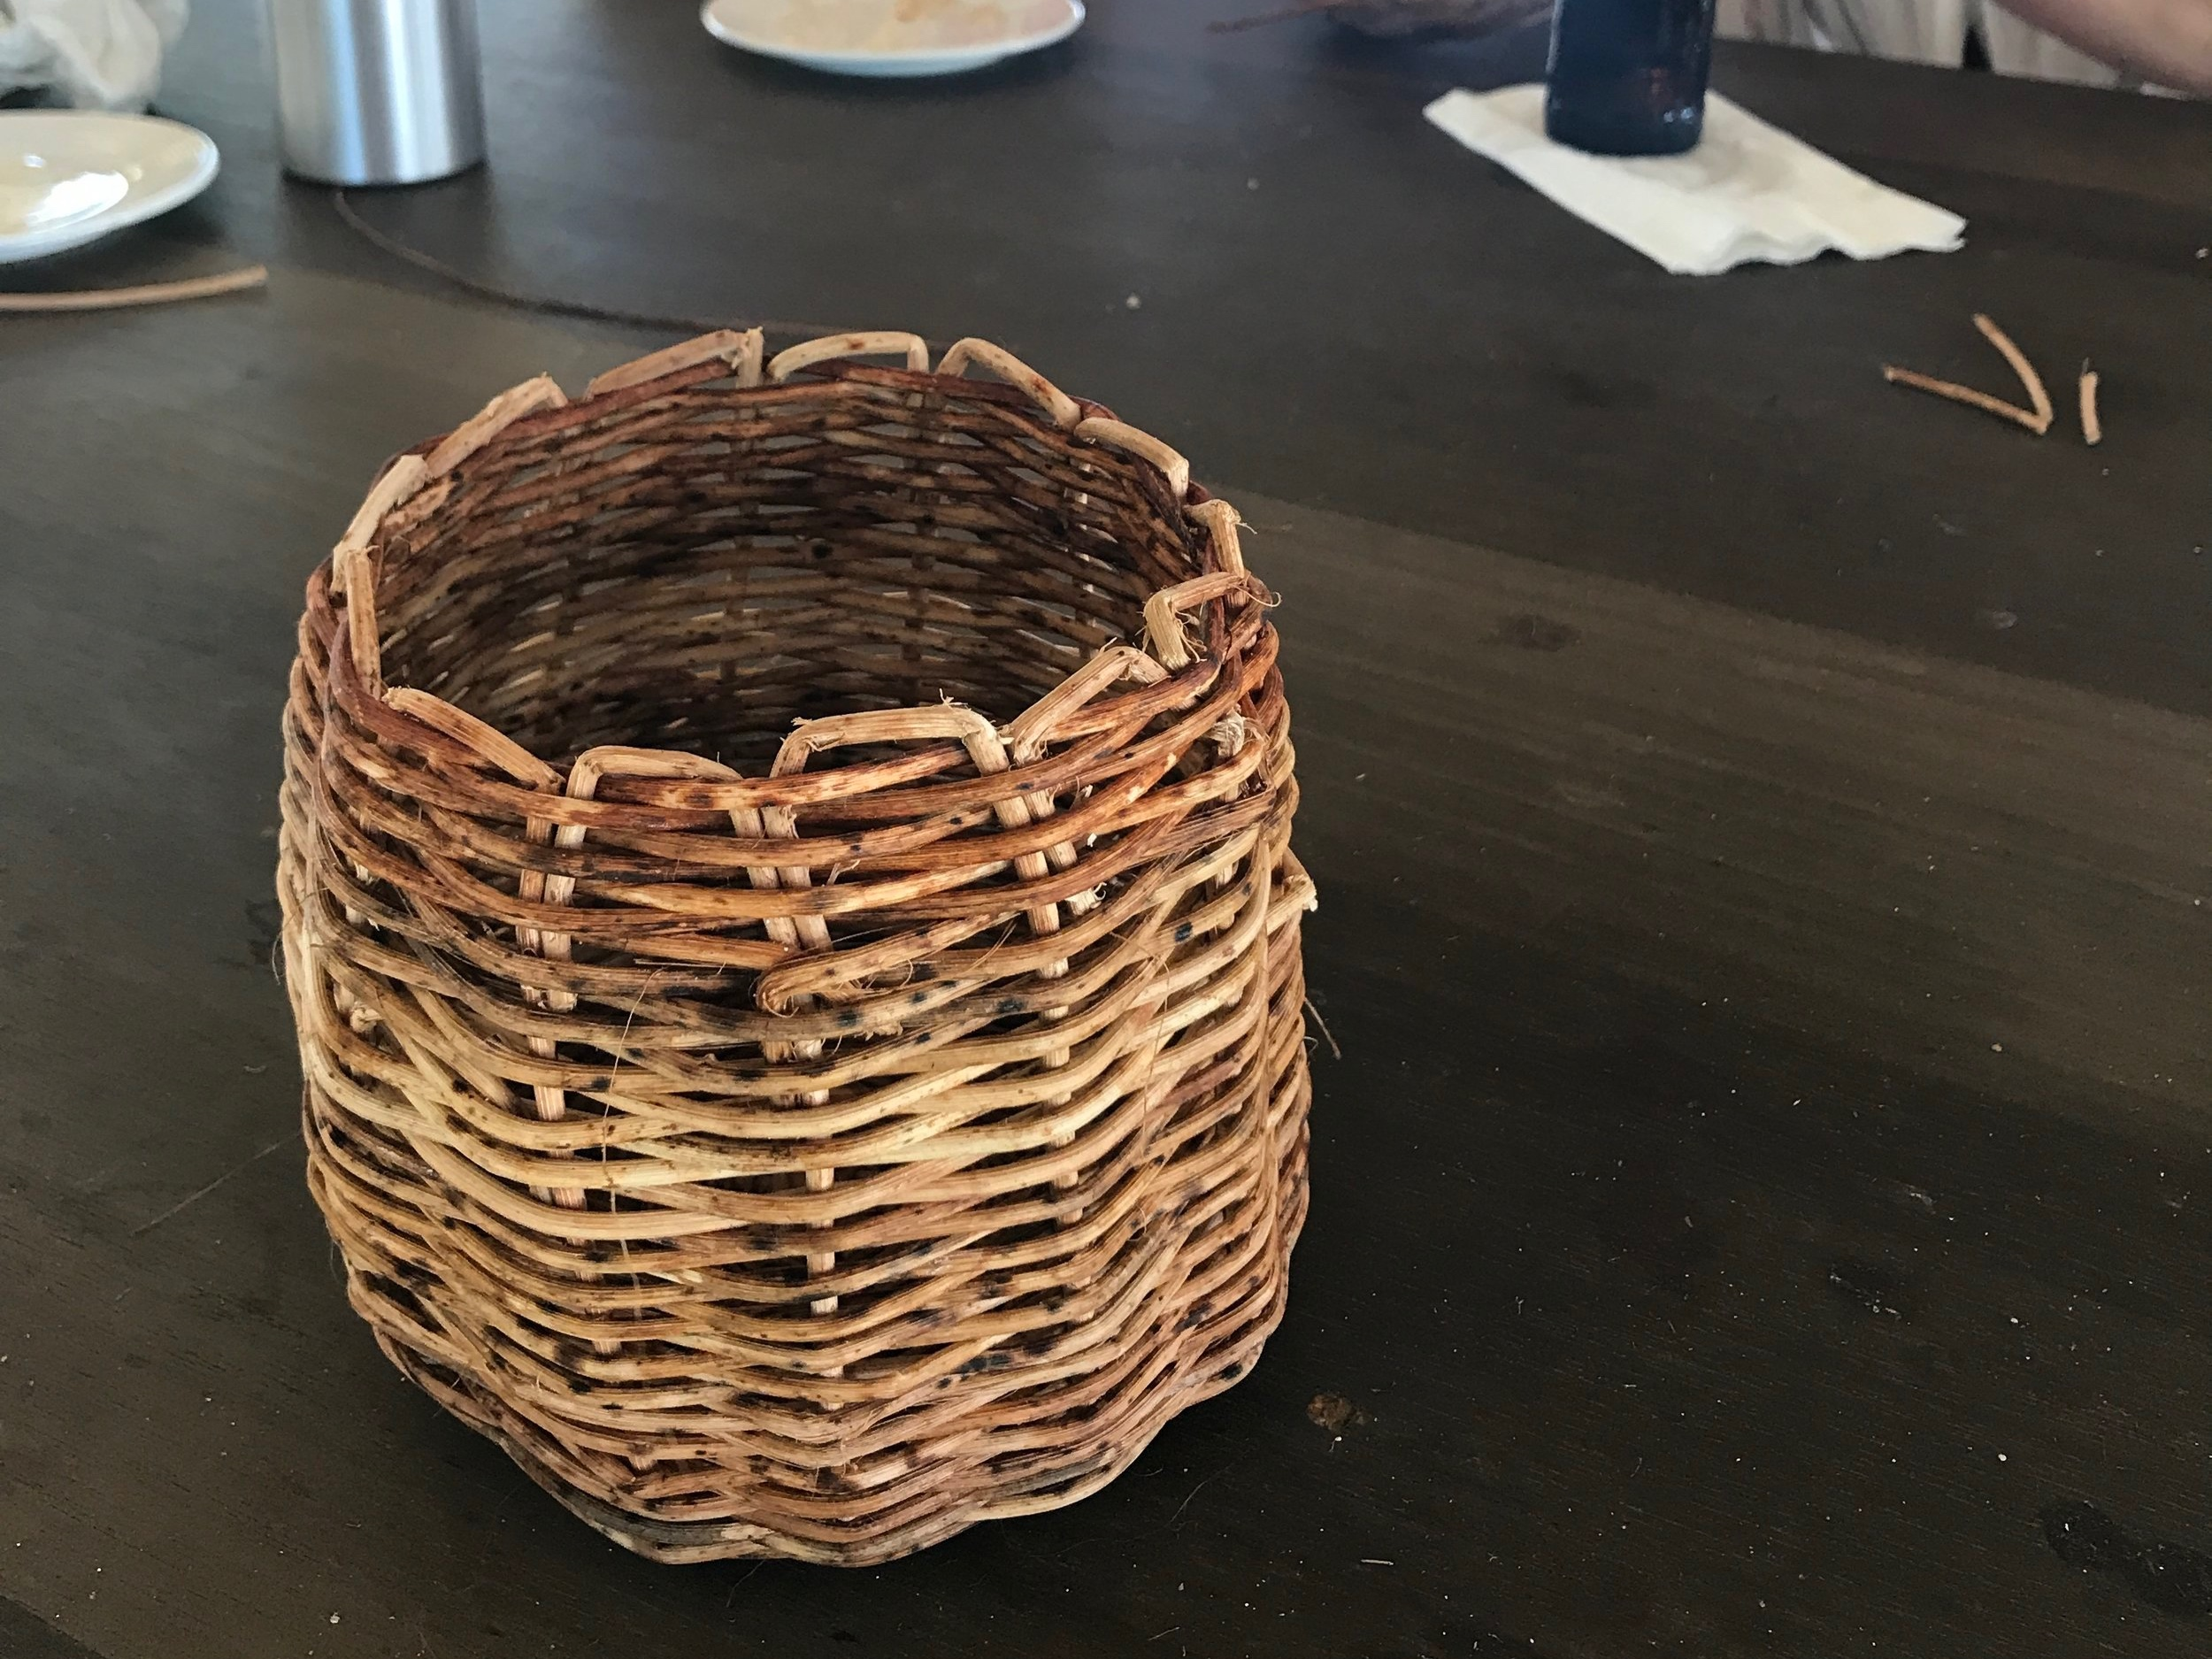 MAYA BASKET WEAVING& LANGUAGE CLASS - Spend time learning Belize's oldest language and oldest traditions. Rufino will guide you in making a small basket with hand selected materials from the jungles of Toledo District. An awesome gift to take home.